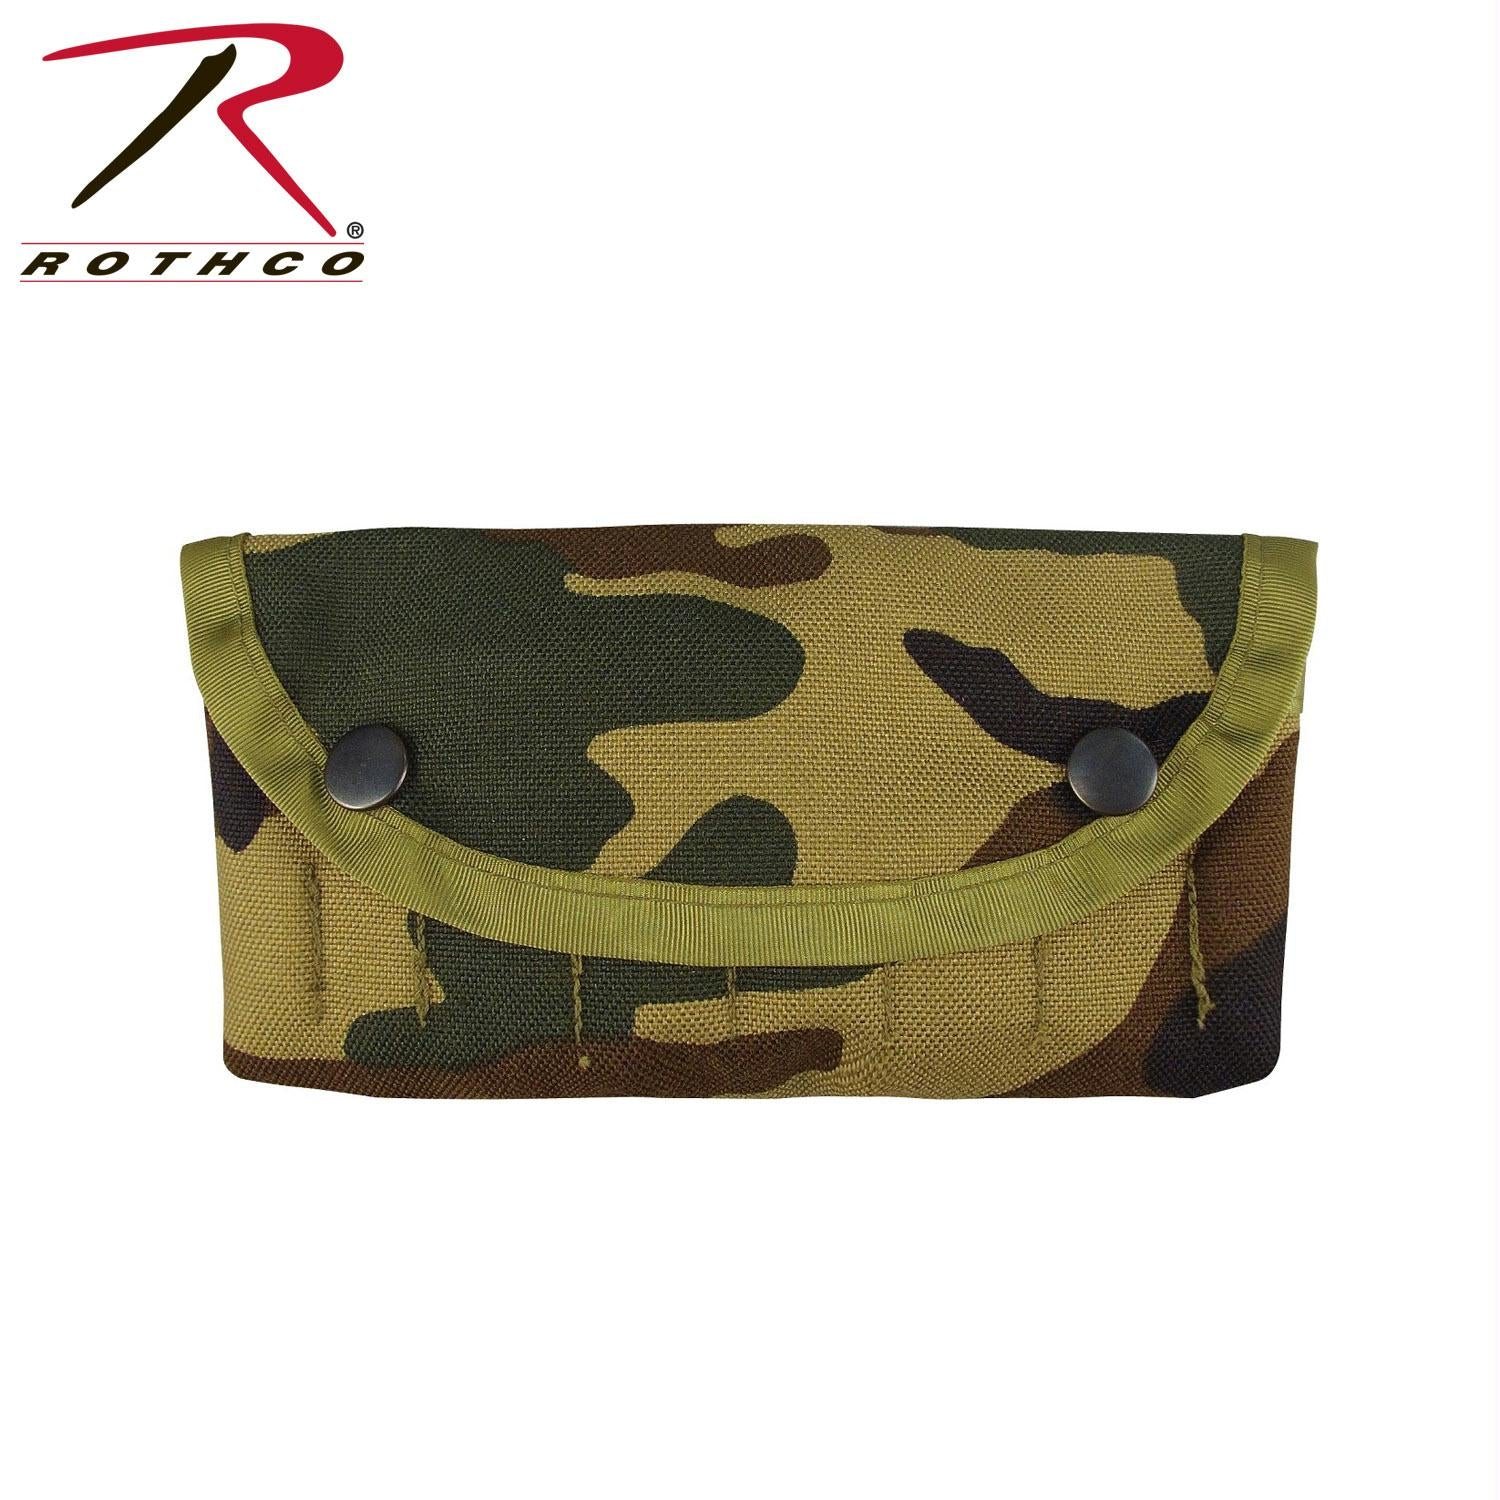 Rothco GI Type Enhanced Shotgun Shell Pouch